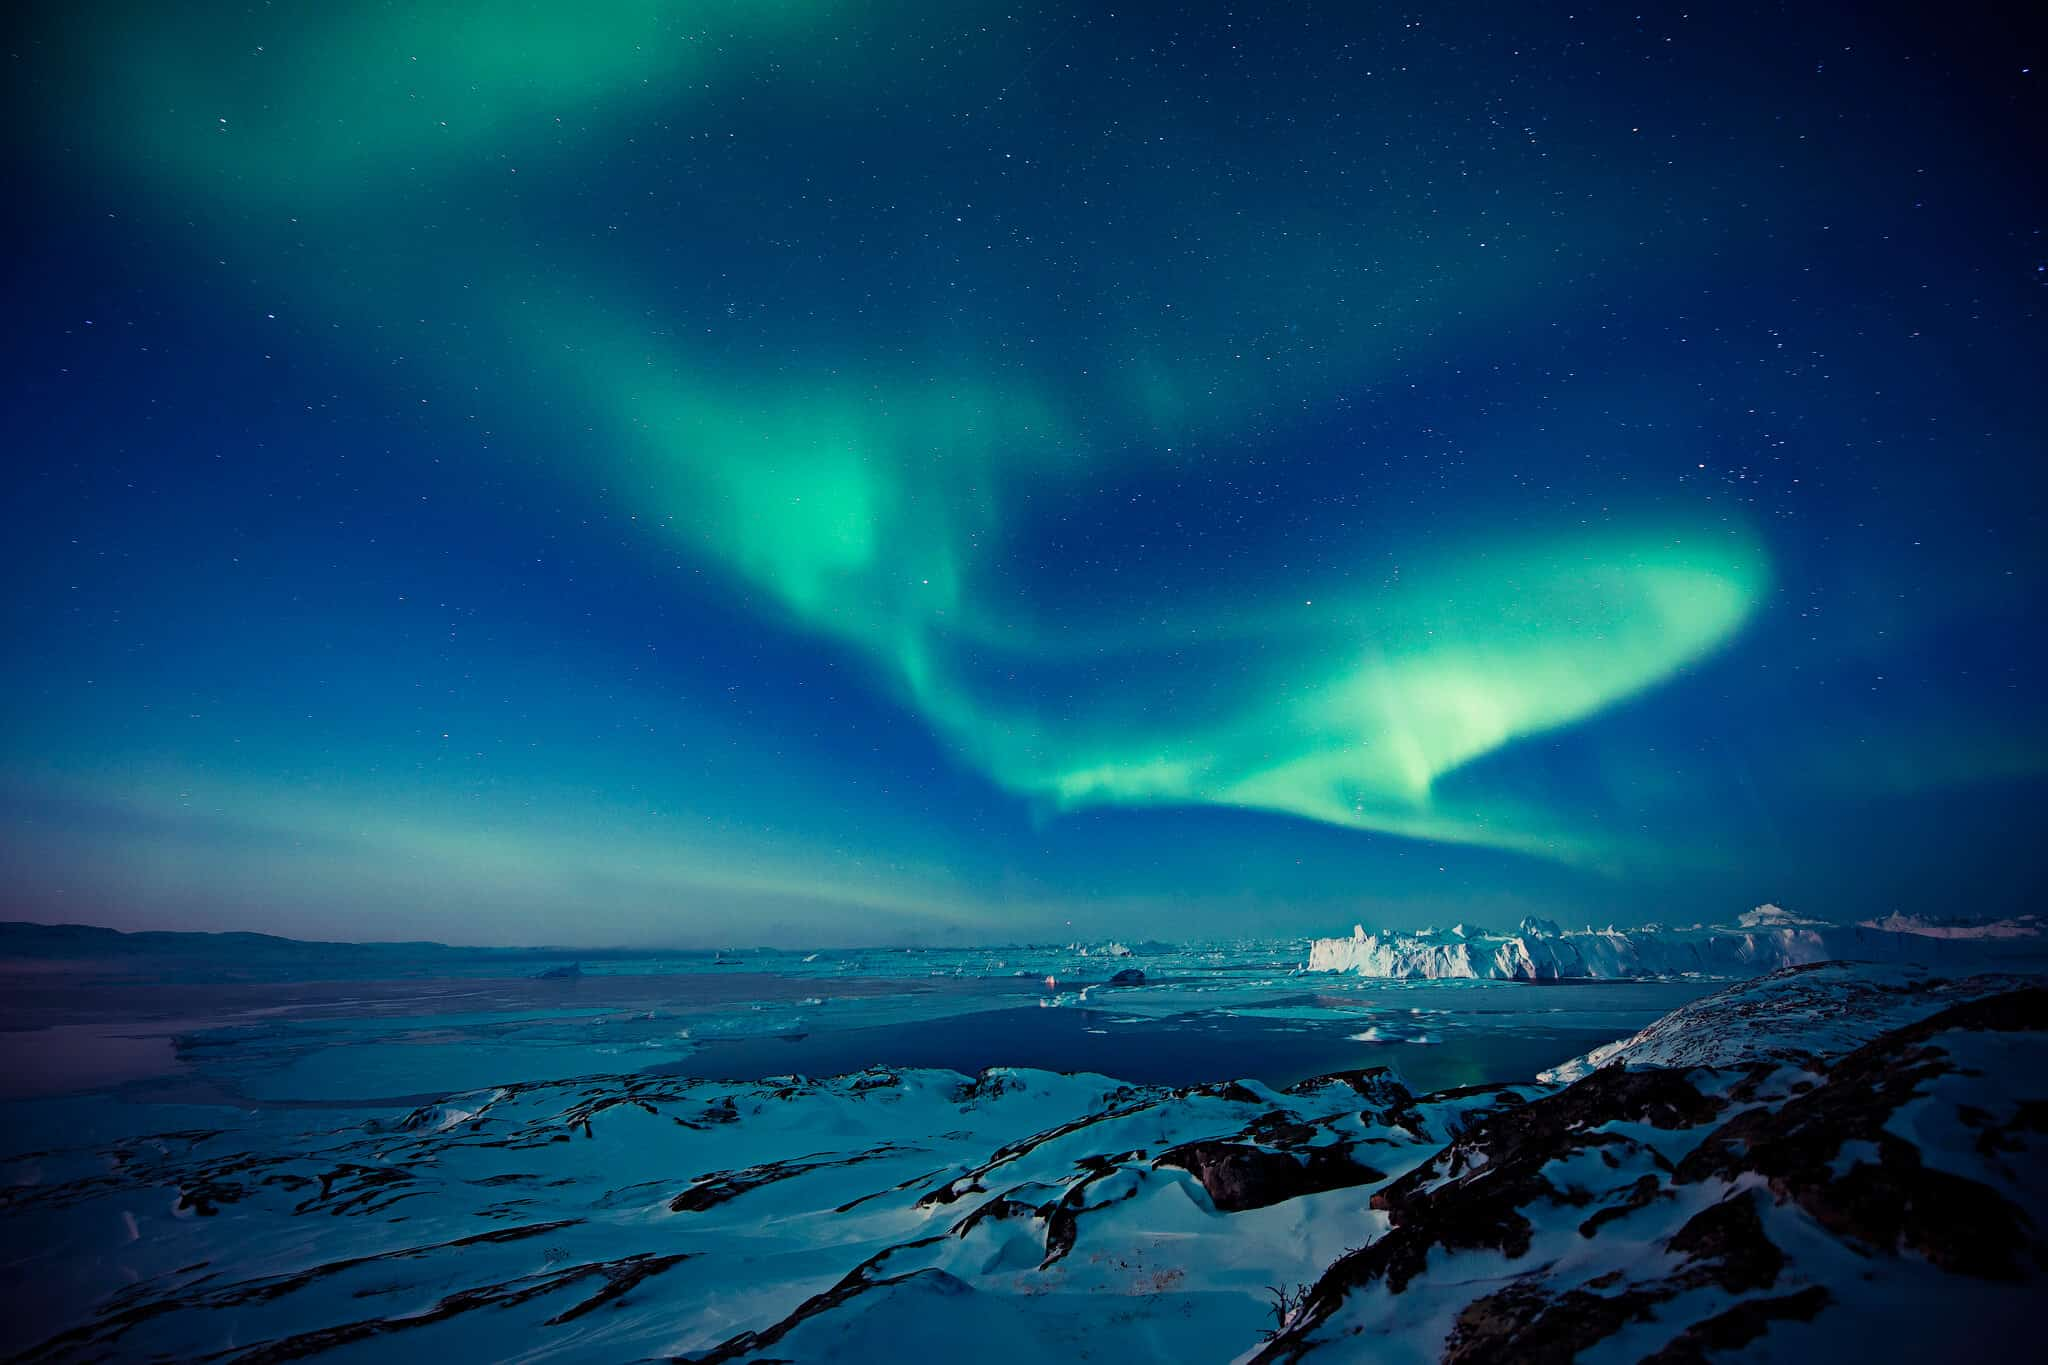 Northern lights over Ilulissat Icefjord. Photo by Andre Schoenherr